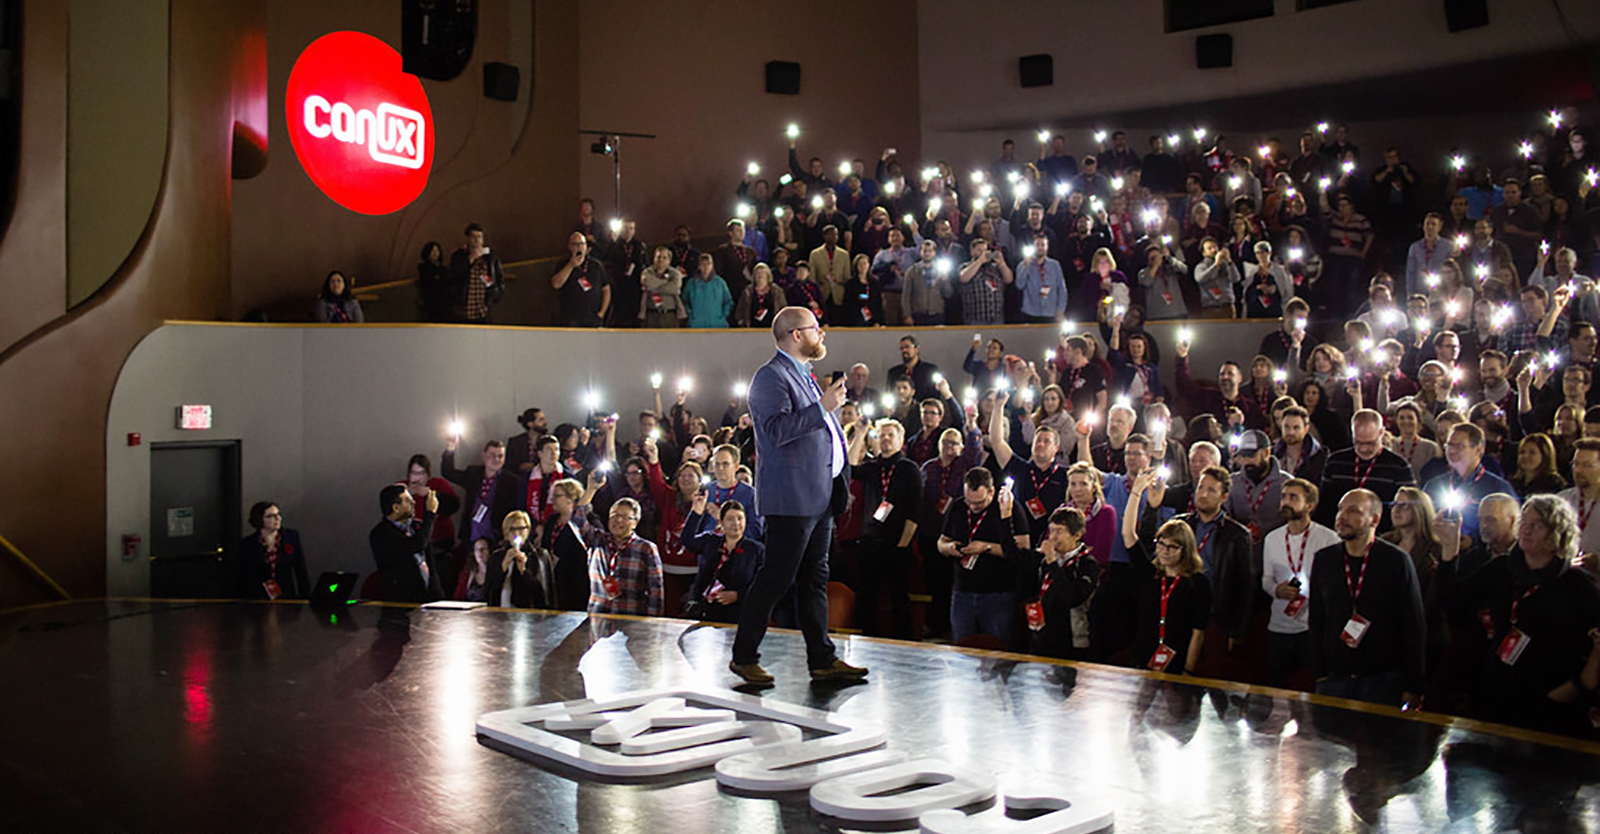 CanUX design conference 2020